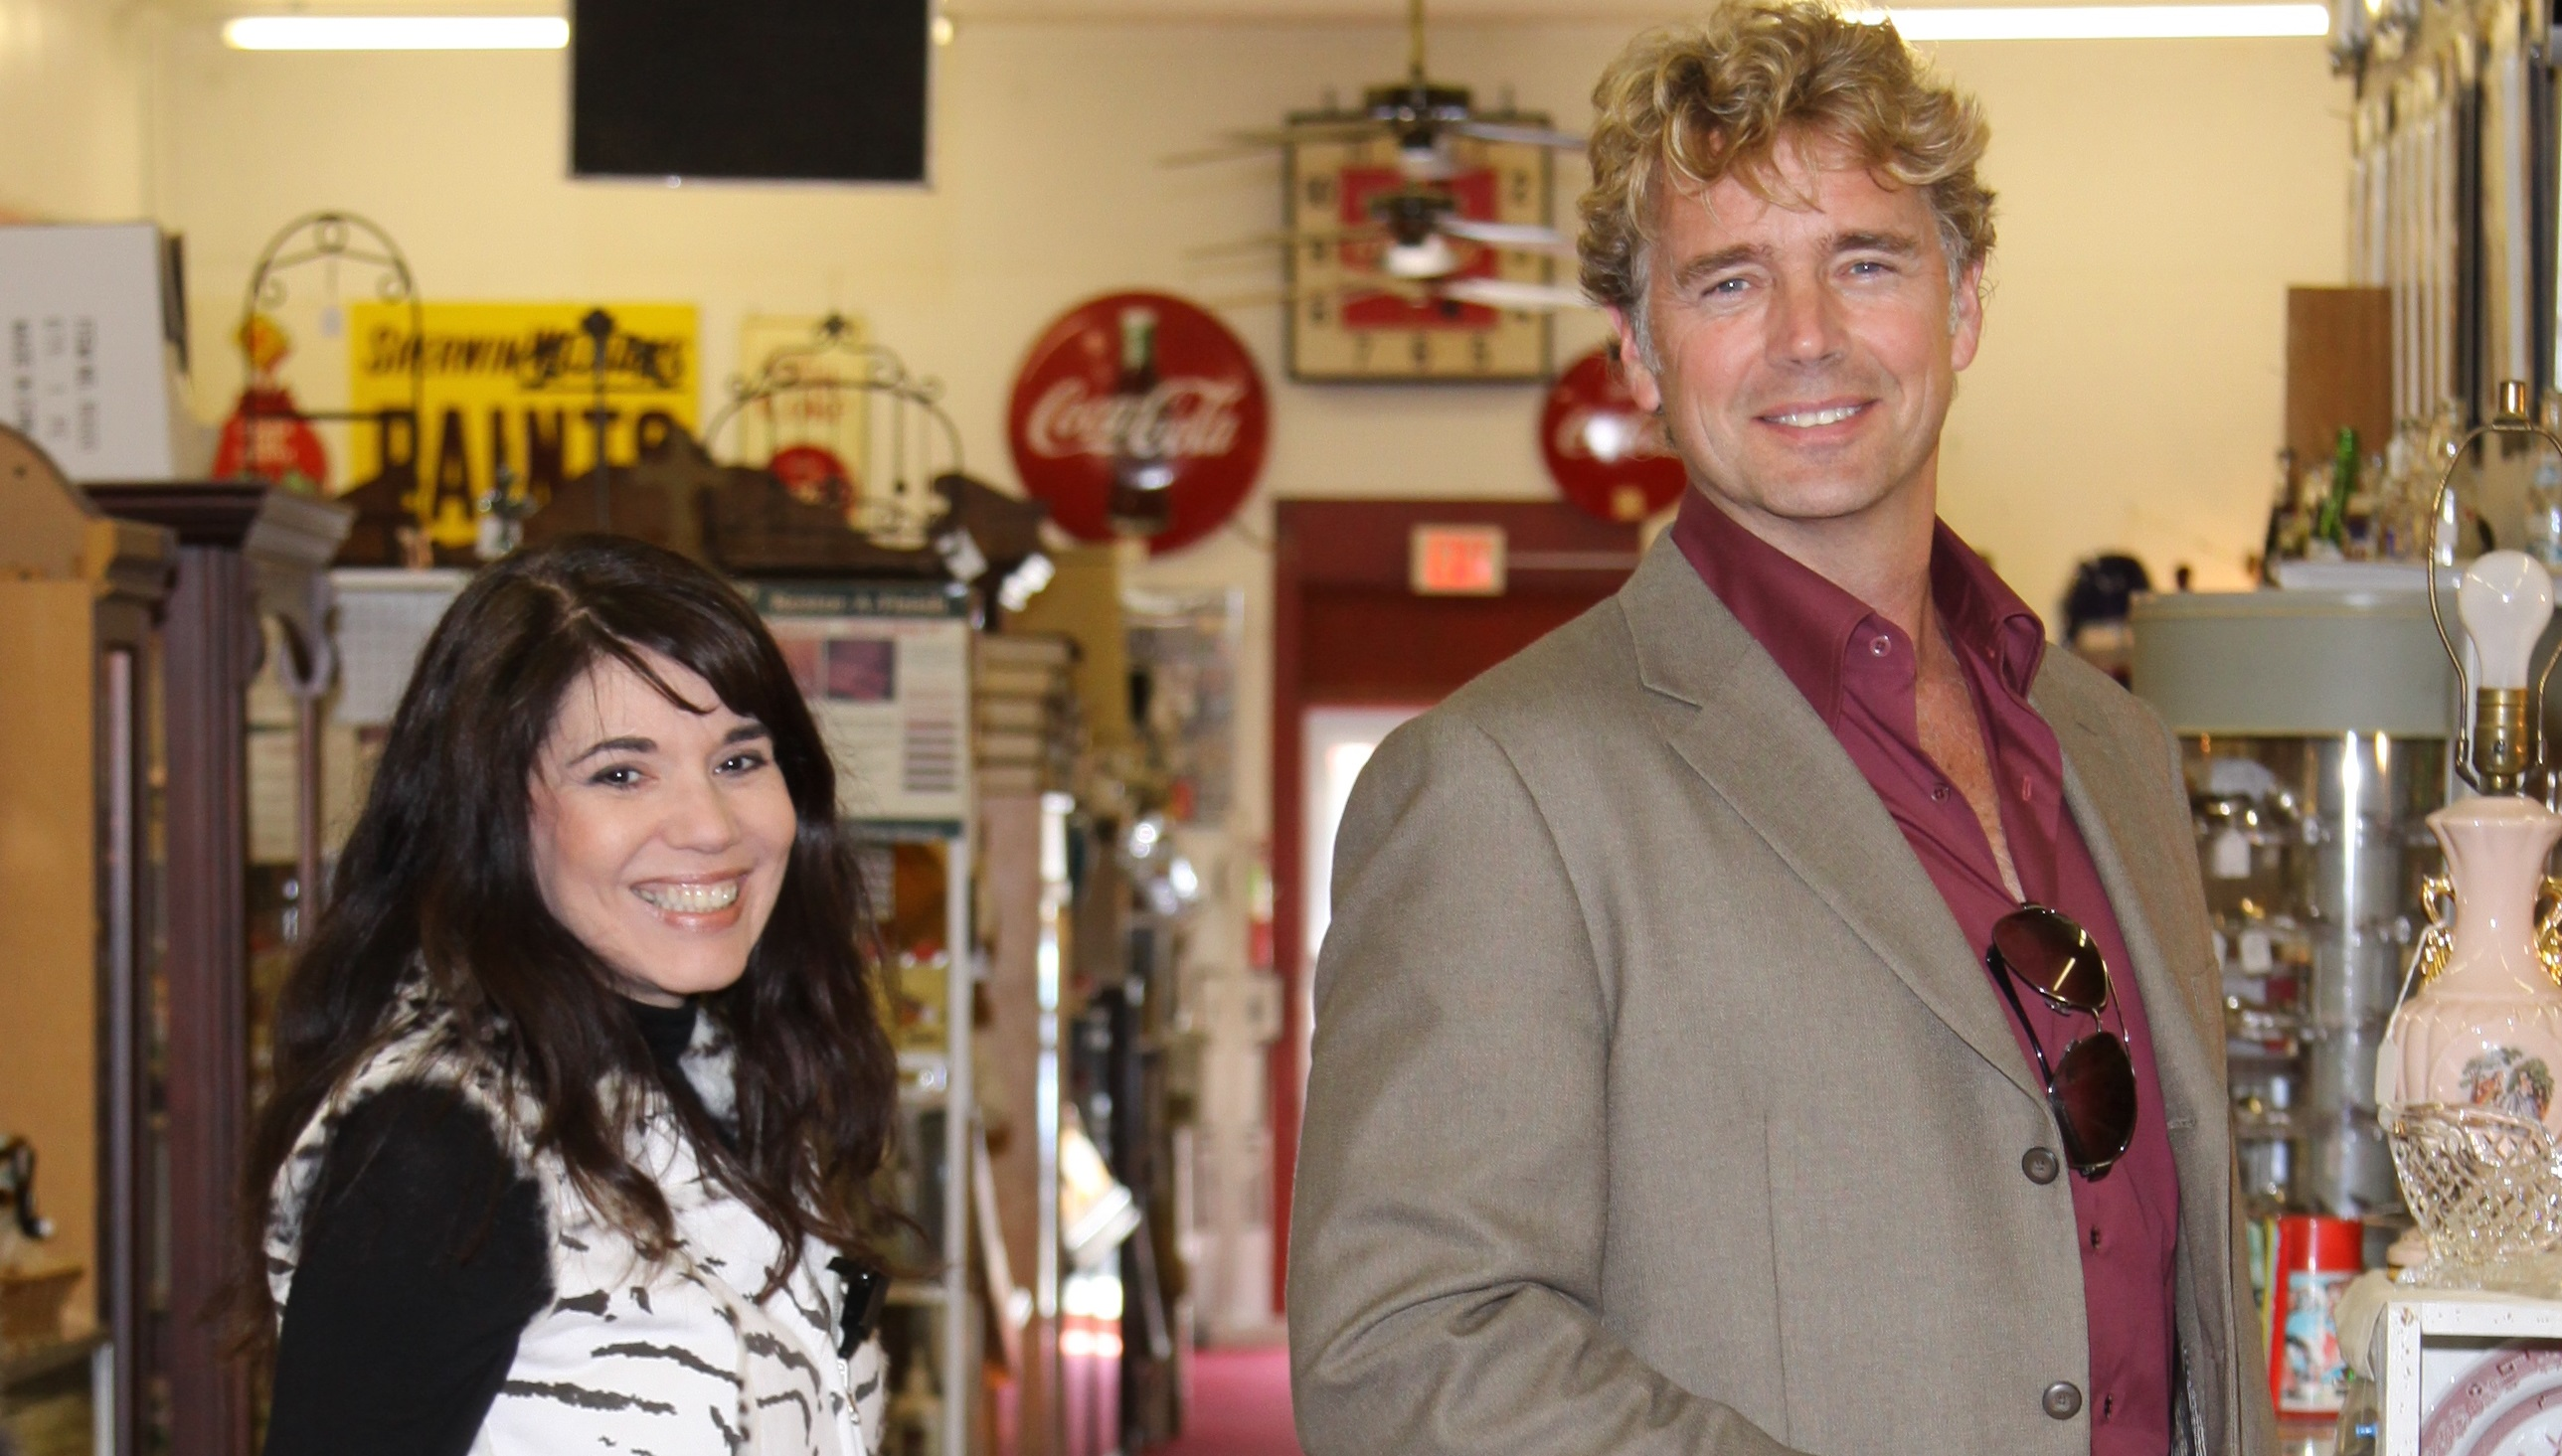 Christian film producer Cheryl Wicker and John Schneider